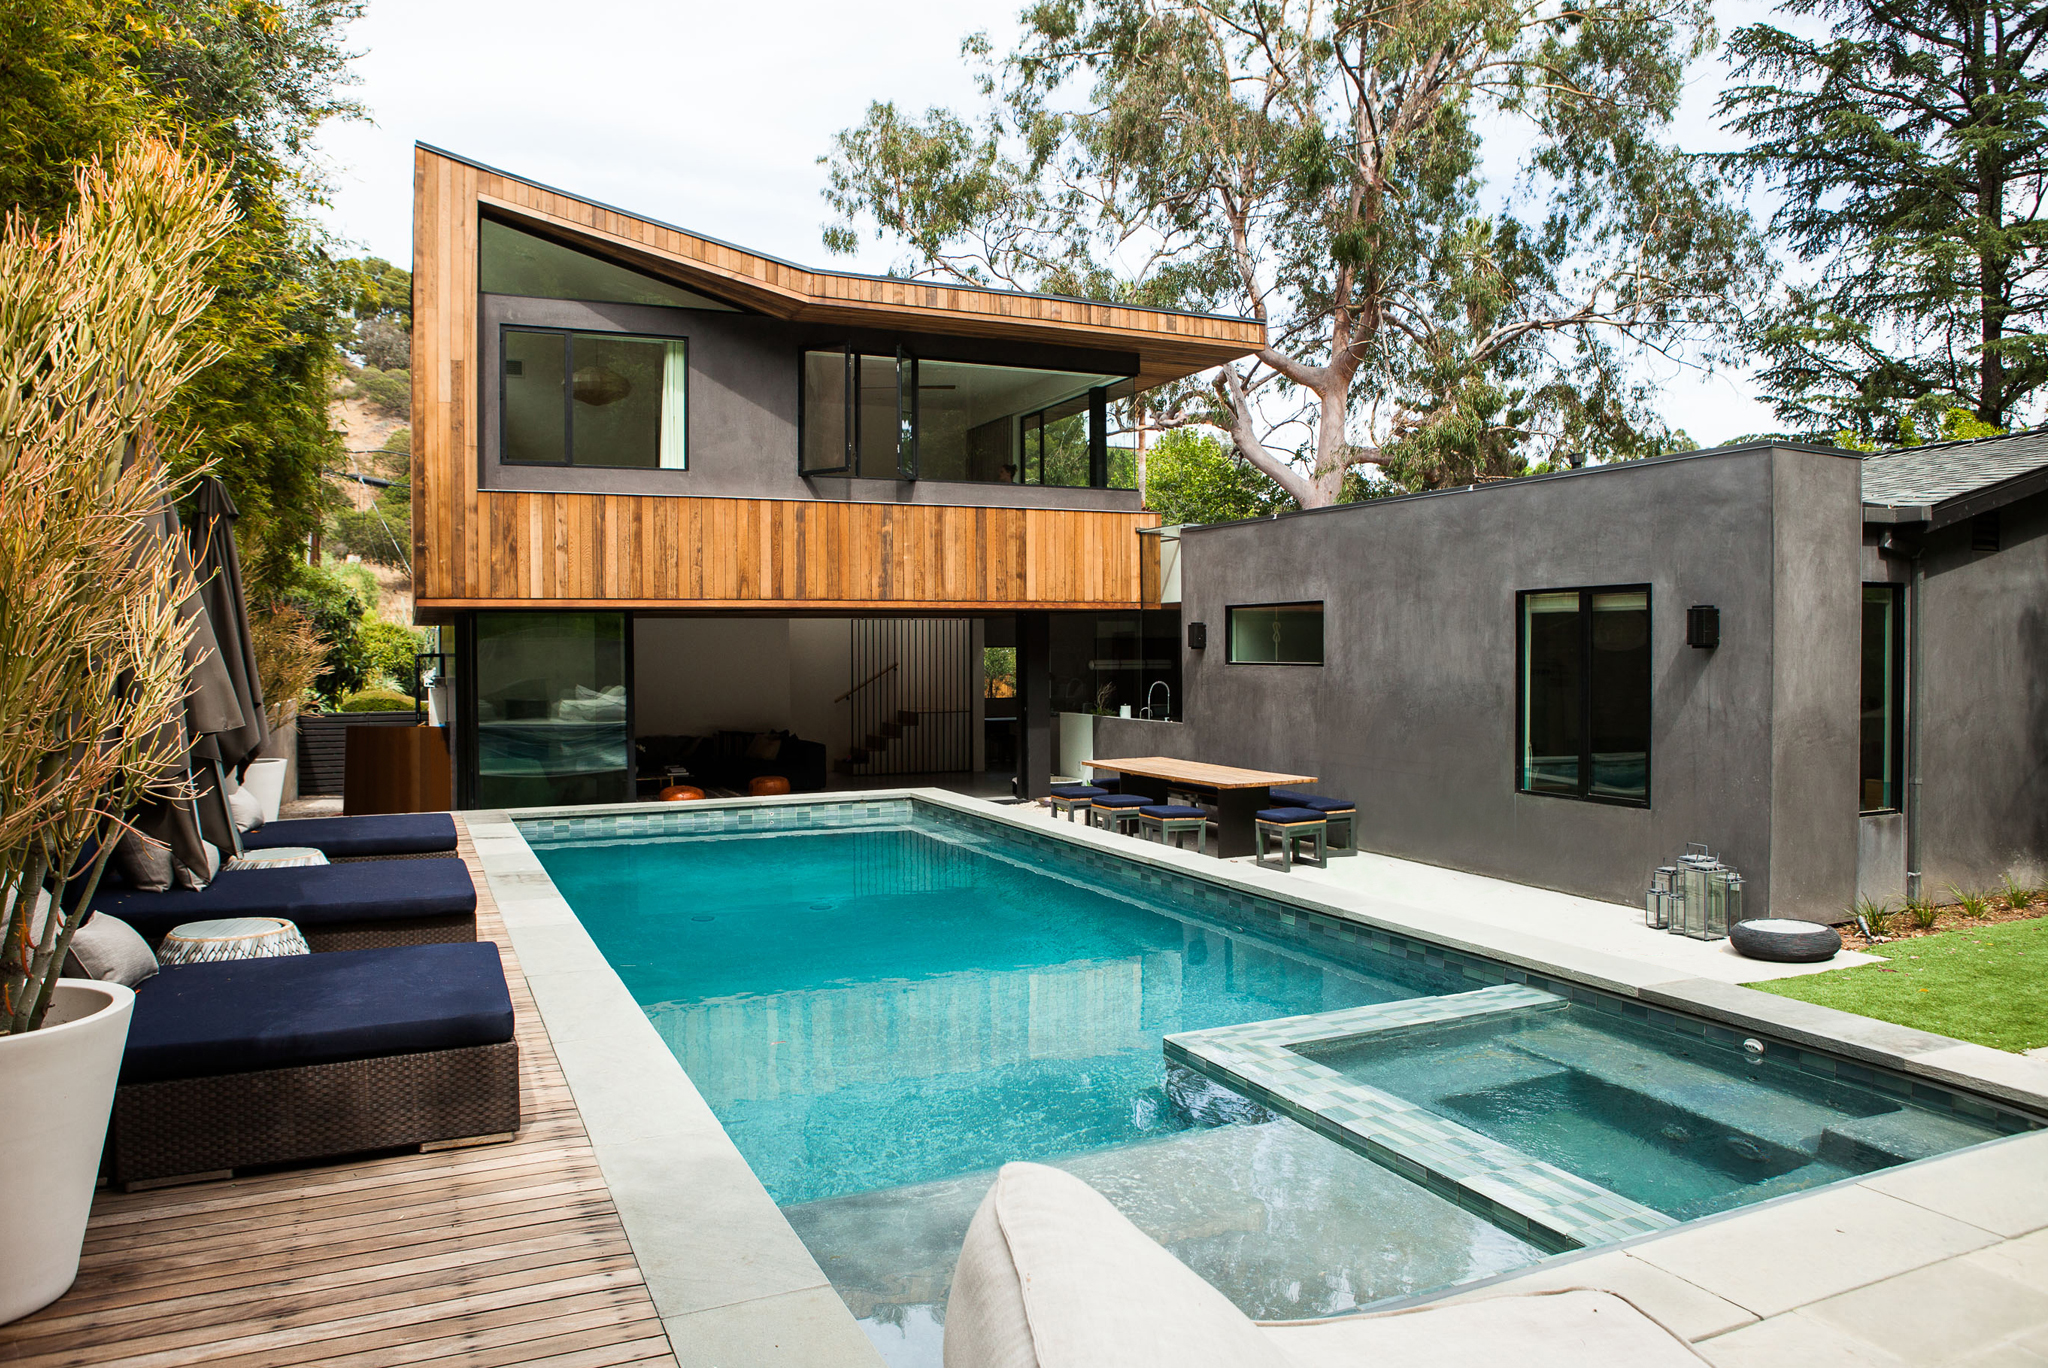 Tepper Residence, Wonderland Ave, Los Angeles by Assembledge+ Architecture | David Thompson